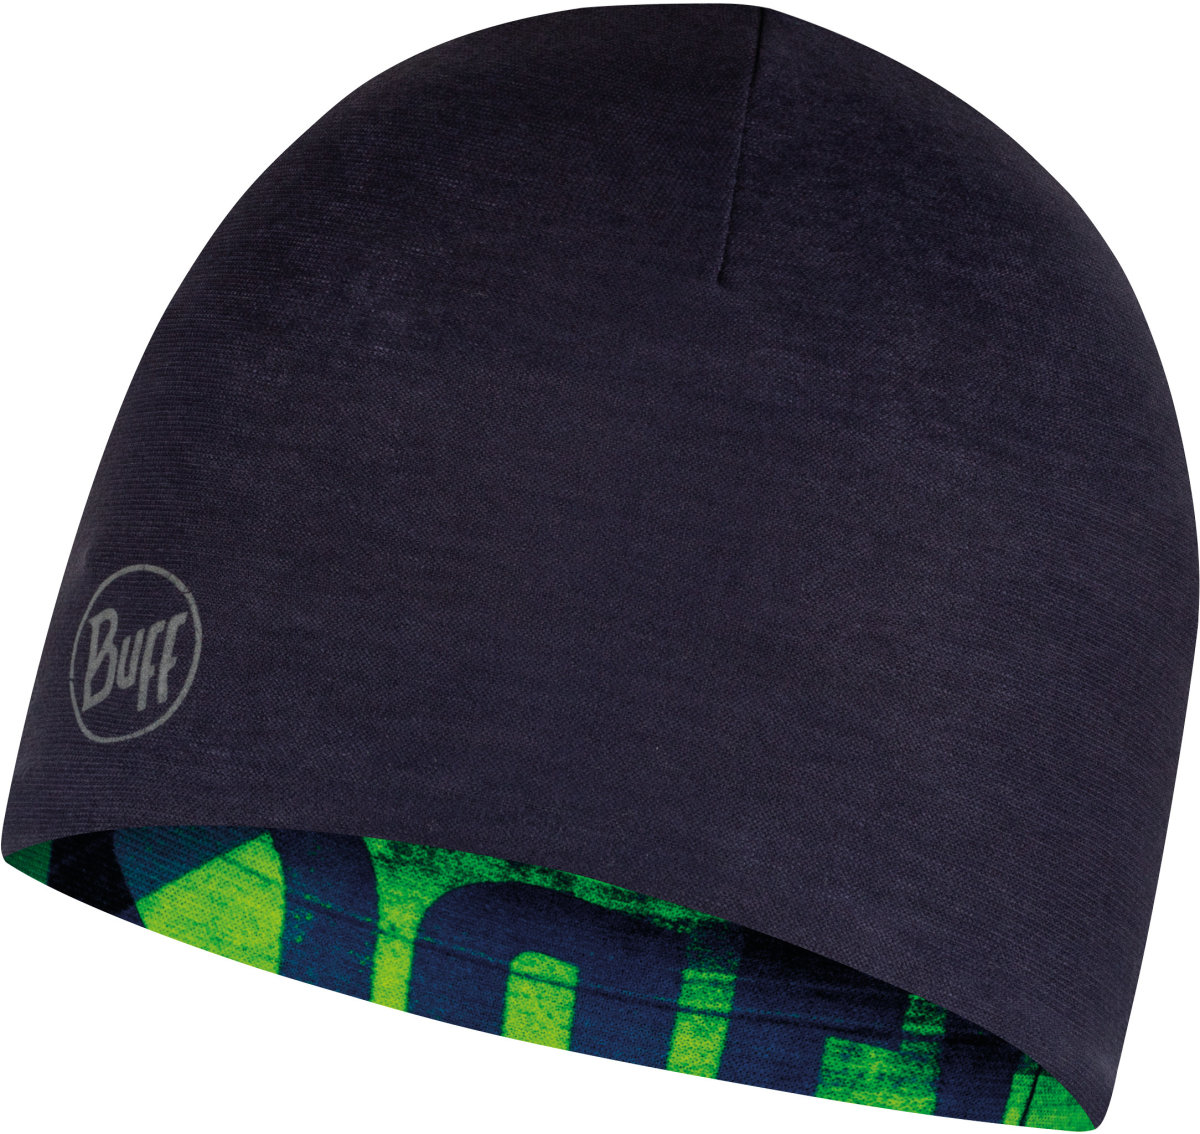 Шапка Buff Microfiber Reversible Hat breaker multi 3 Microfiber Reversible Hat BU 121599.555.10.00